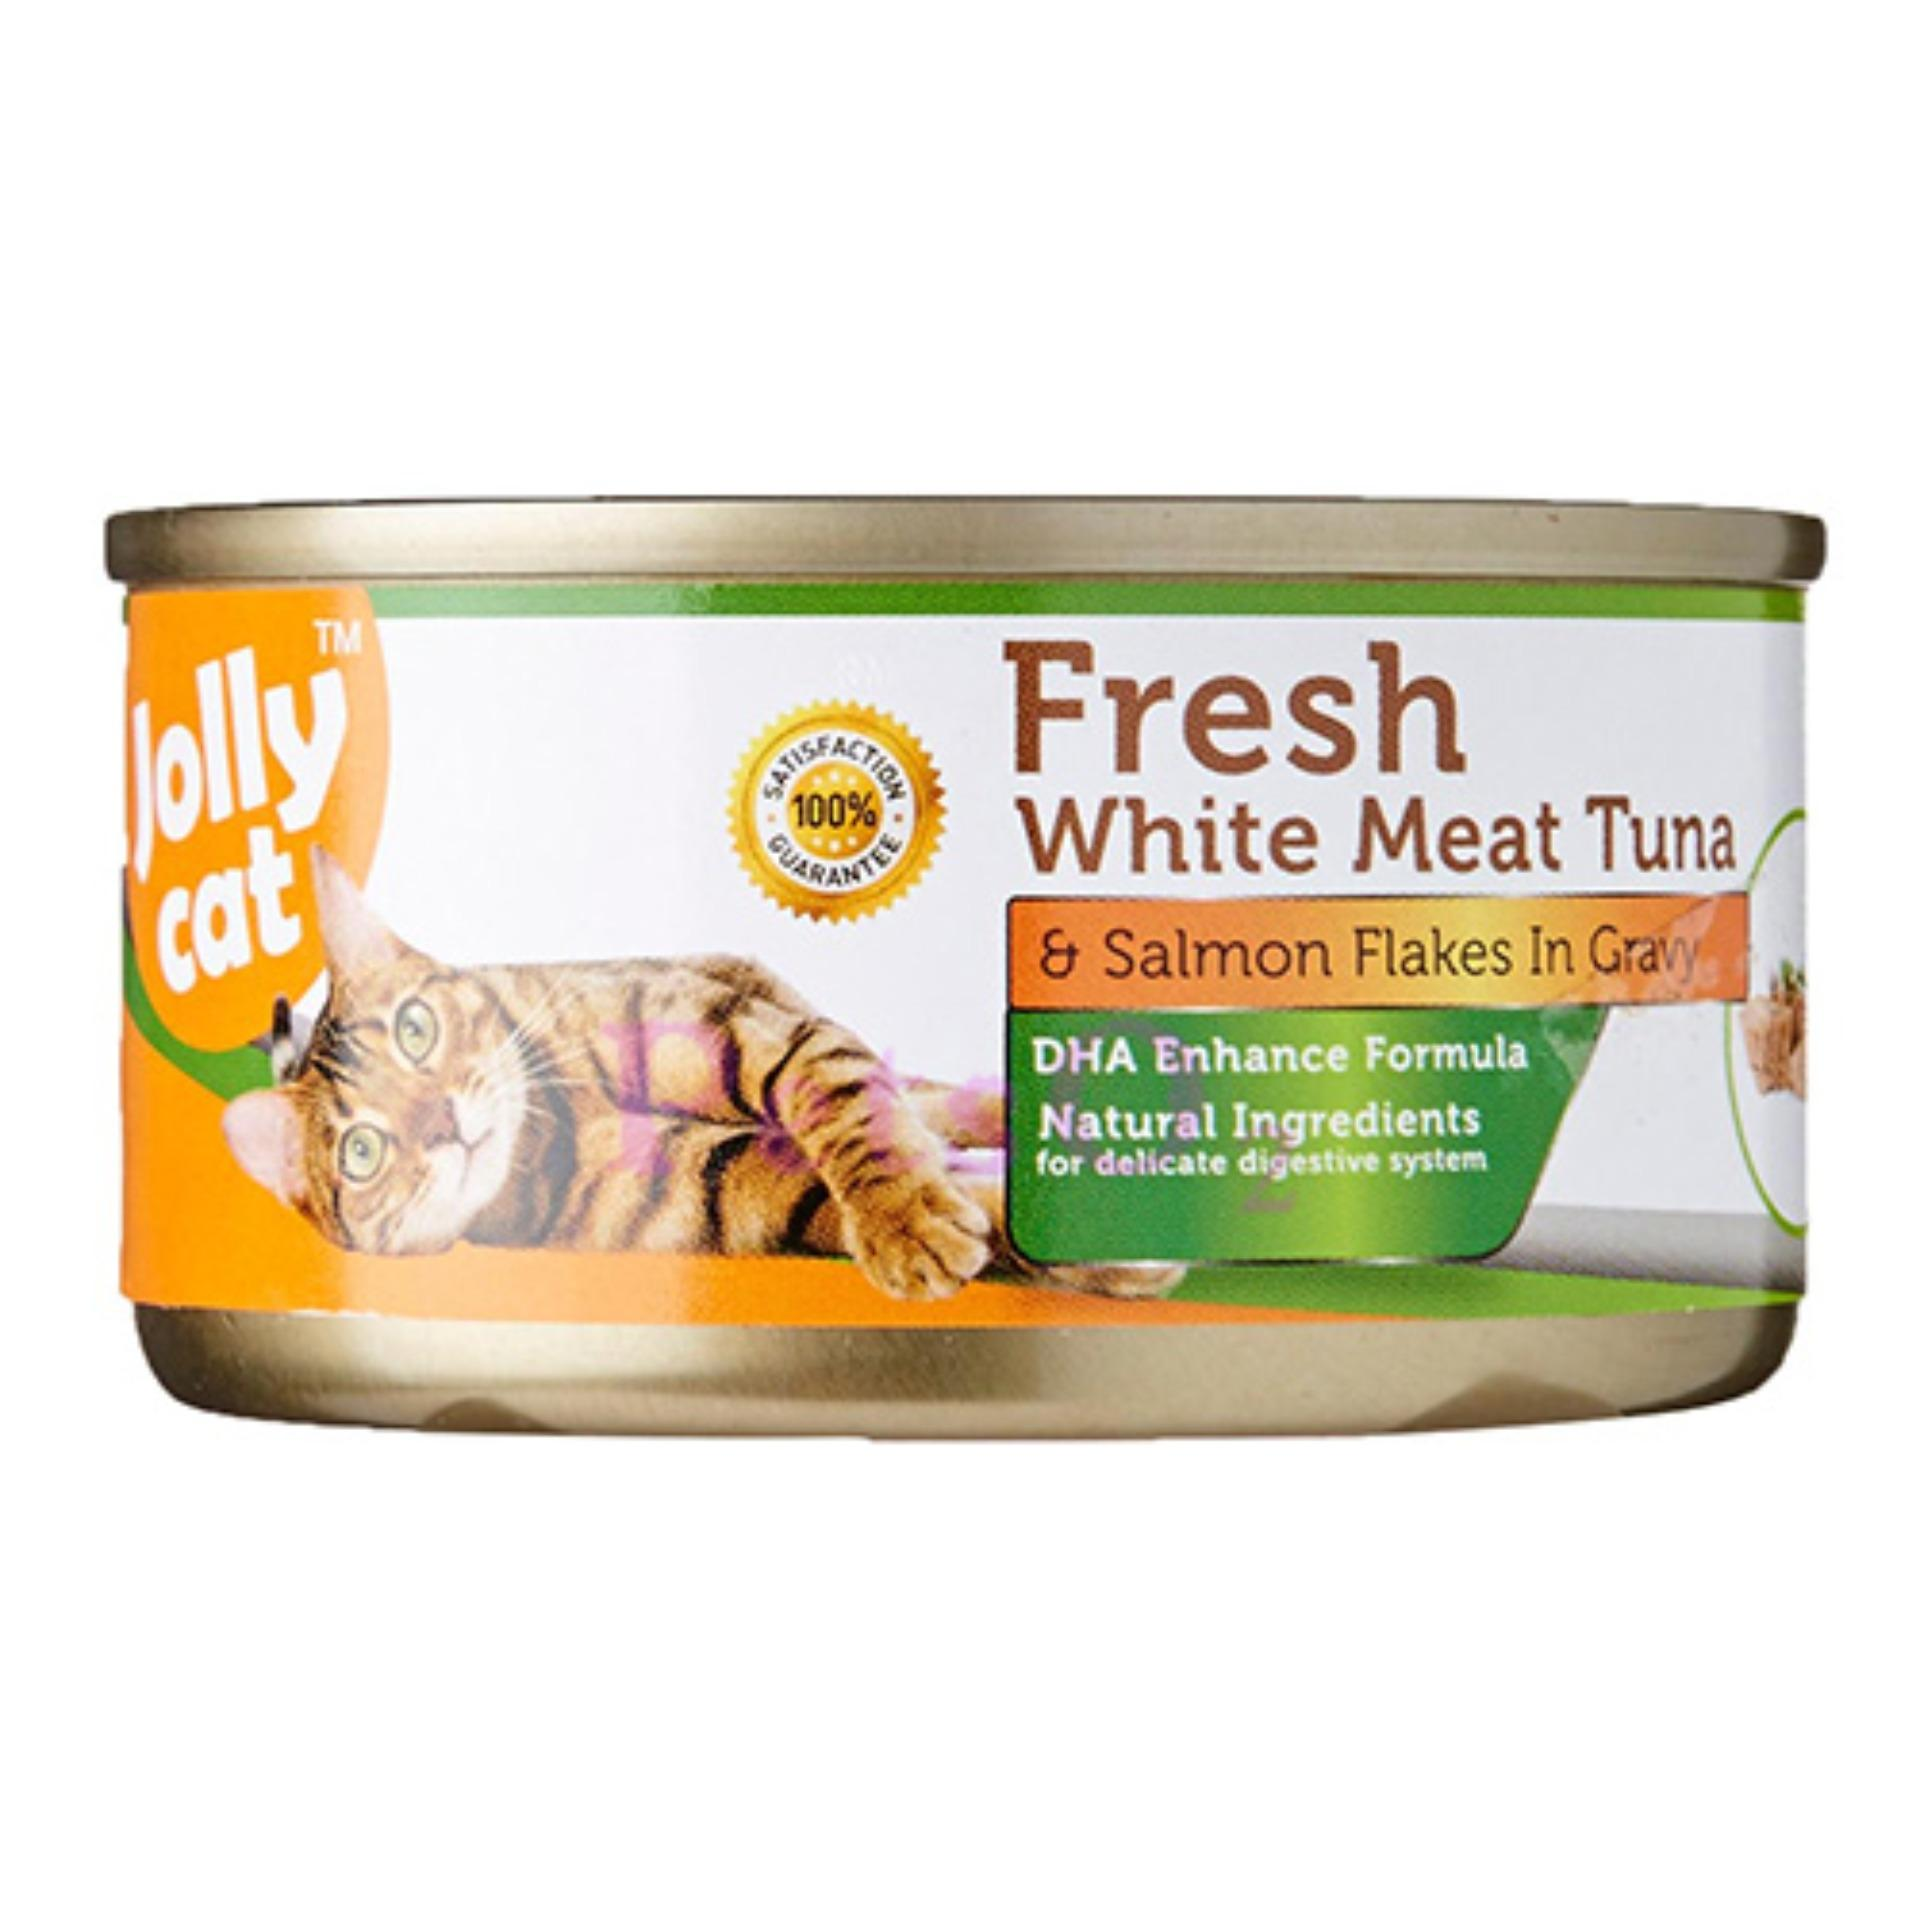 Fancy Feast Cat Food Grilled Salmon Price In Singapore Turkey Gravy 85g 6 Pcs Free Pouch Jolly Fresh White Meat Tuna And Flakes 80g X 24 Cans